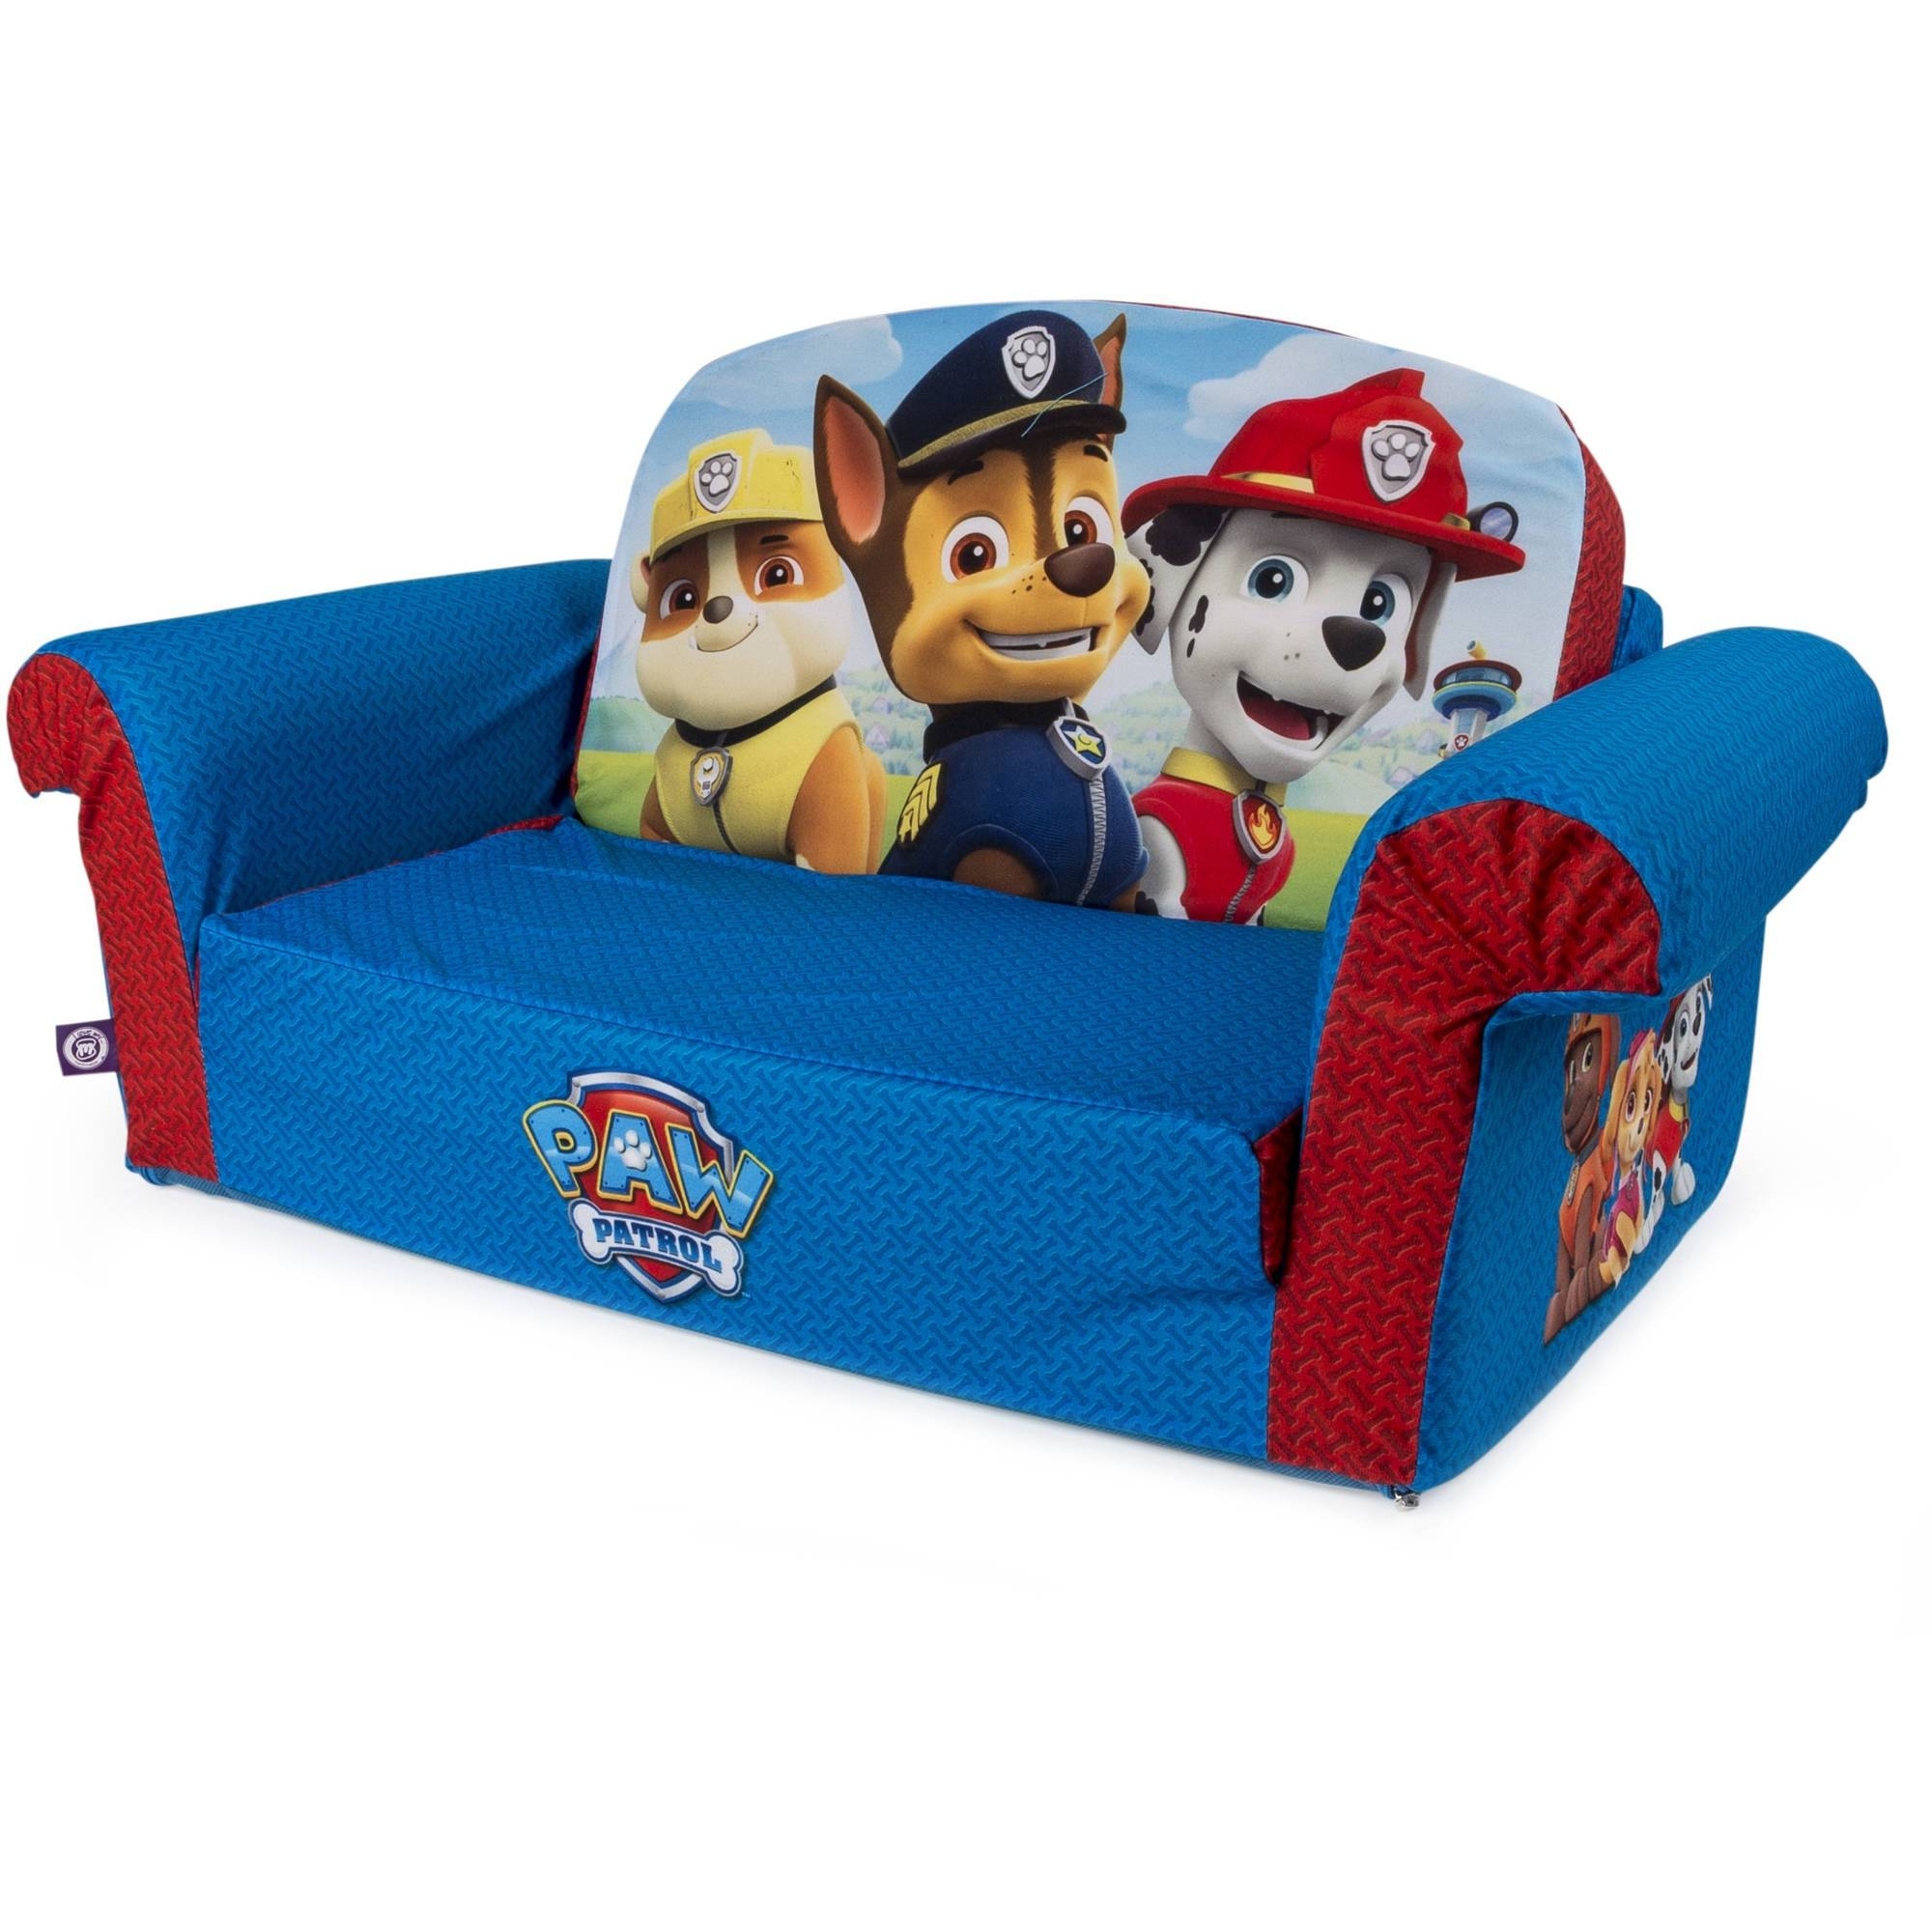 Marshmallow Furniture, Children's 2 In 1 Flip Open Foam Sofa pertaining to Flip Open Sofas for Toddlers (Image 11 of 15)